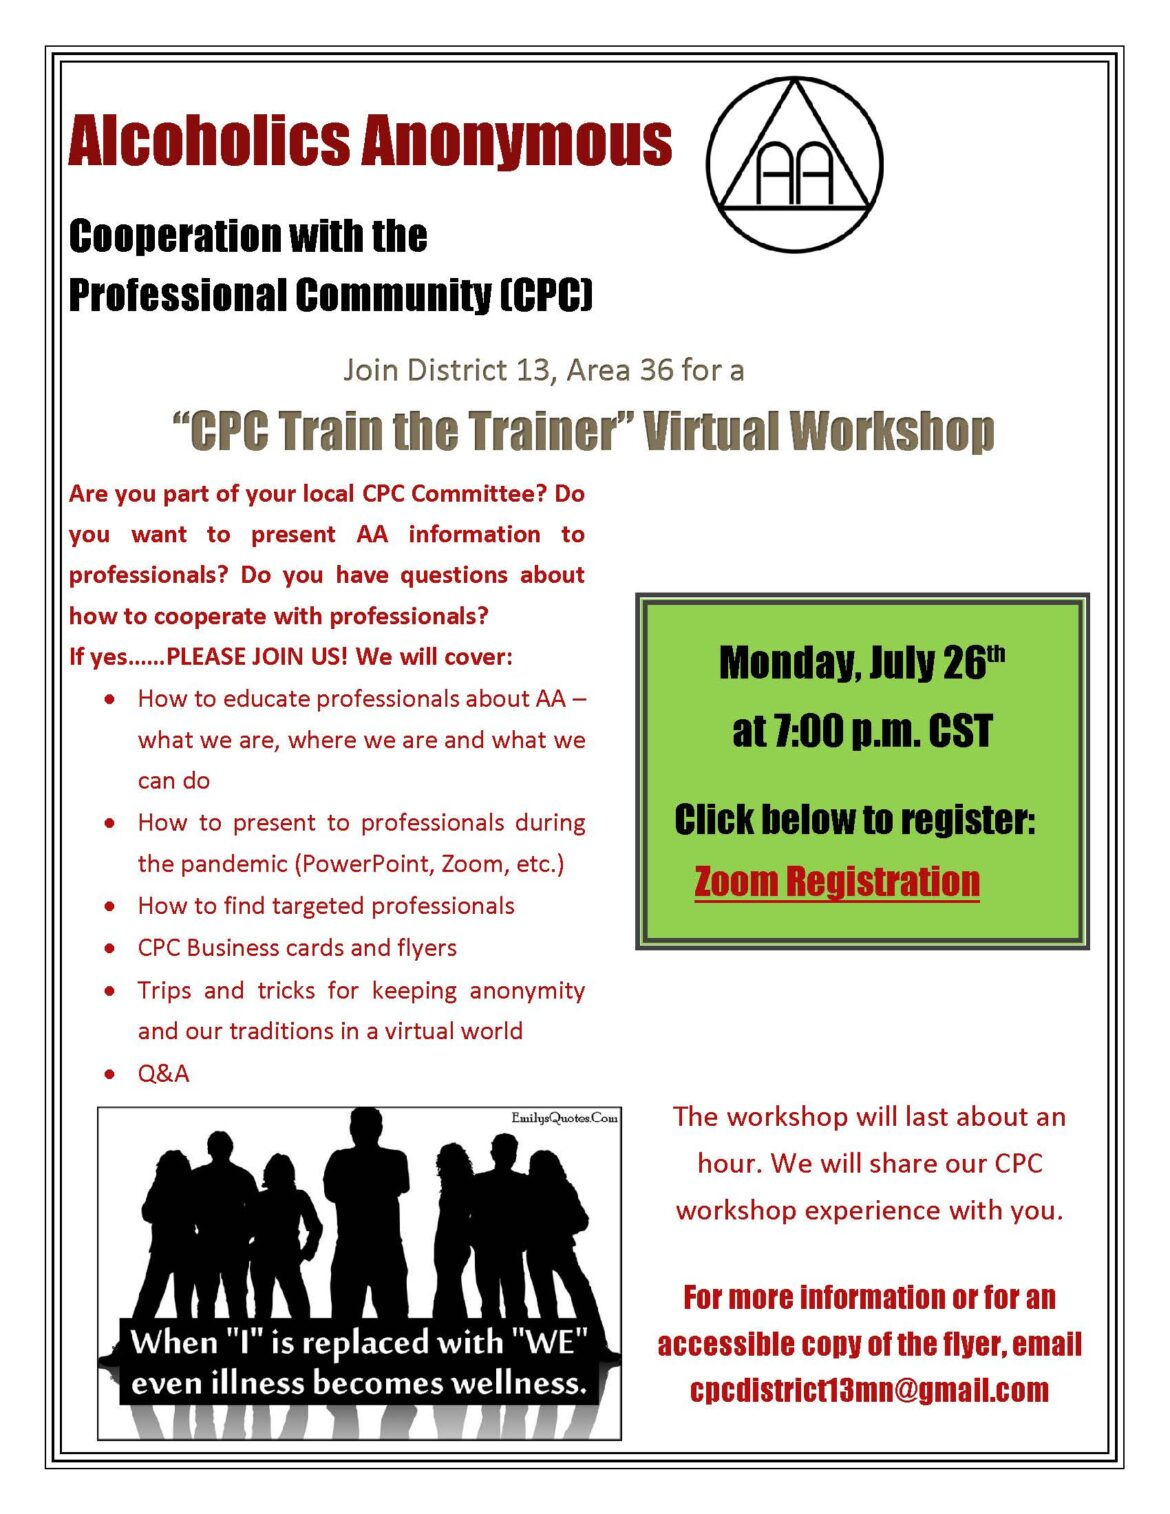 """Cooperation with the Professional Community: """"Train the Trainer"""" Workshop"""